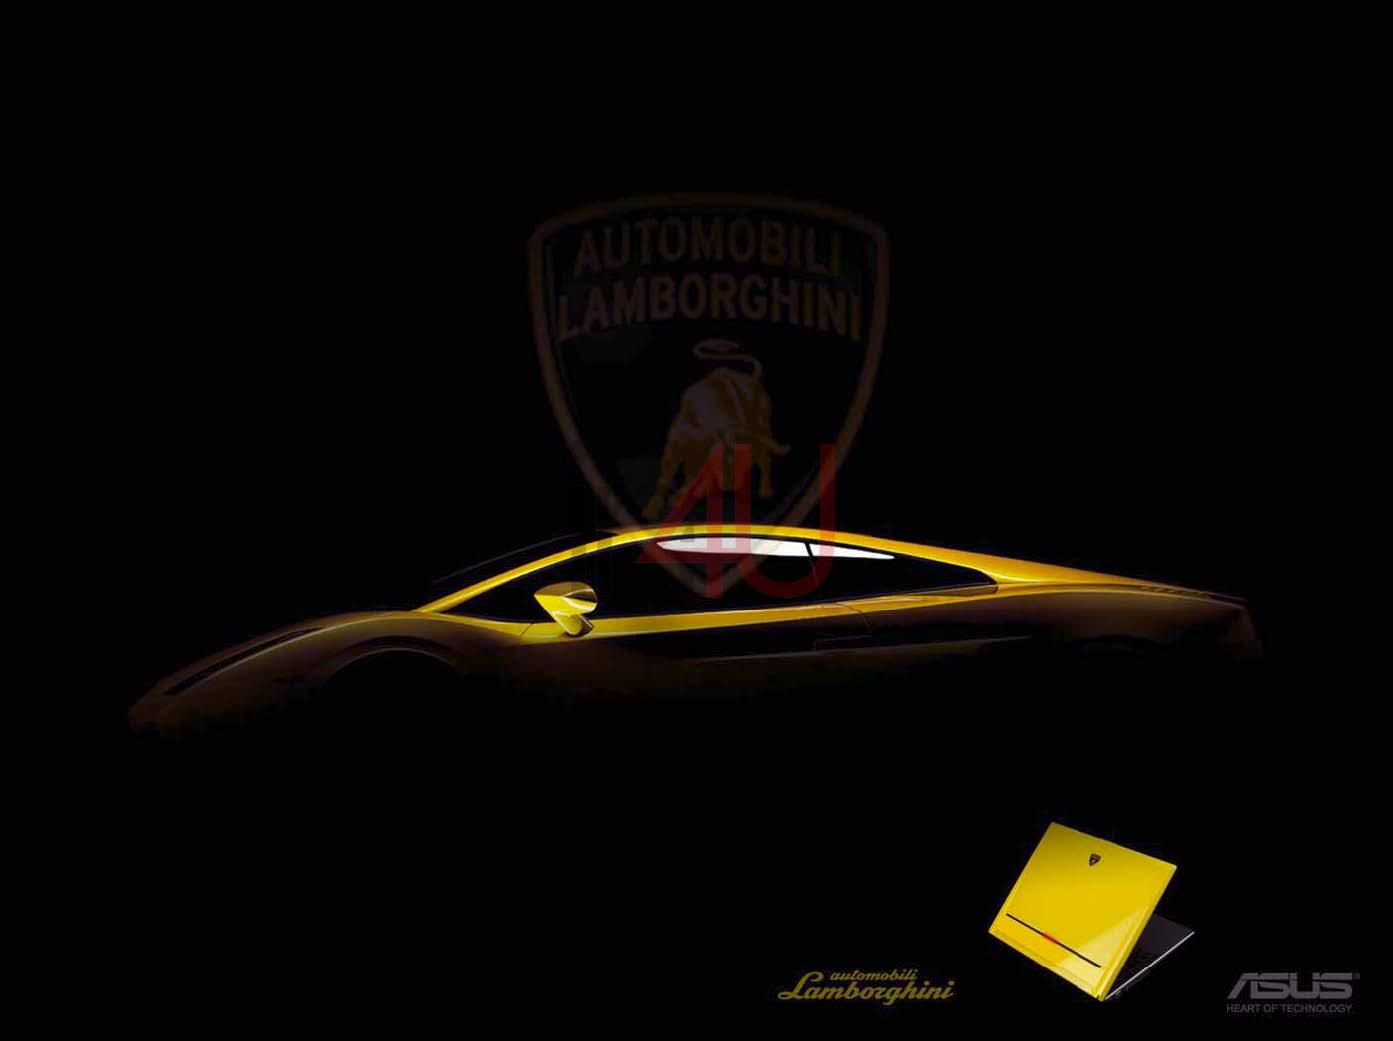 Asus Laptop wallpapers Lamborghini Laptop hd Lamborghini Car and 1393x1041